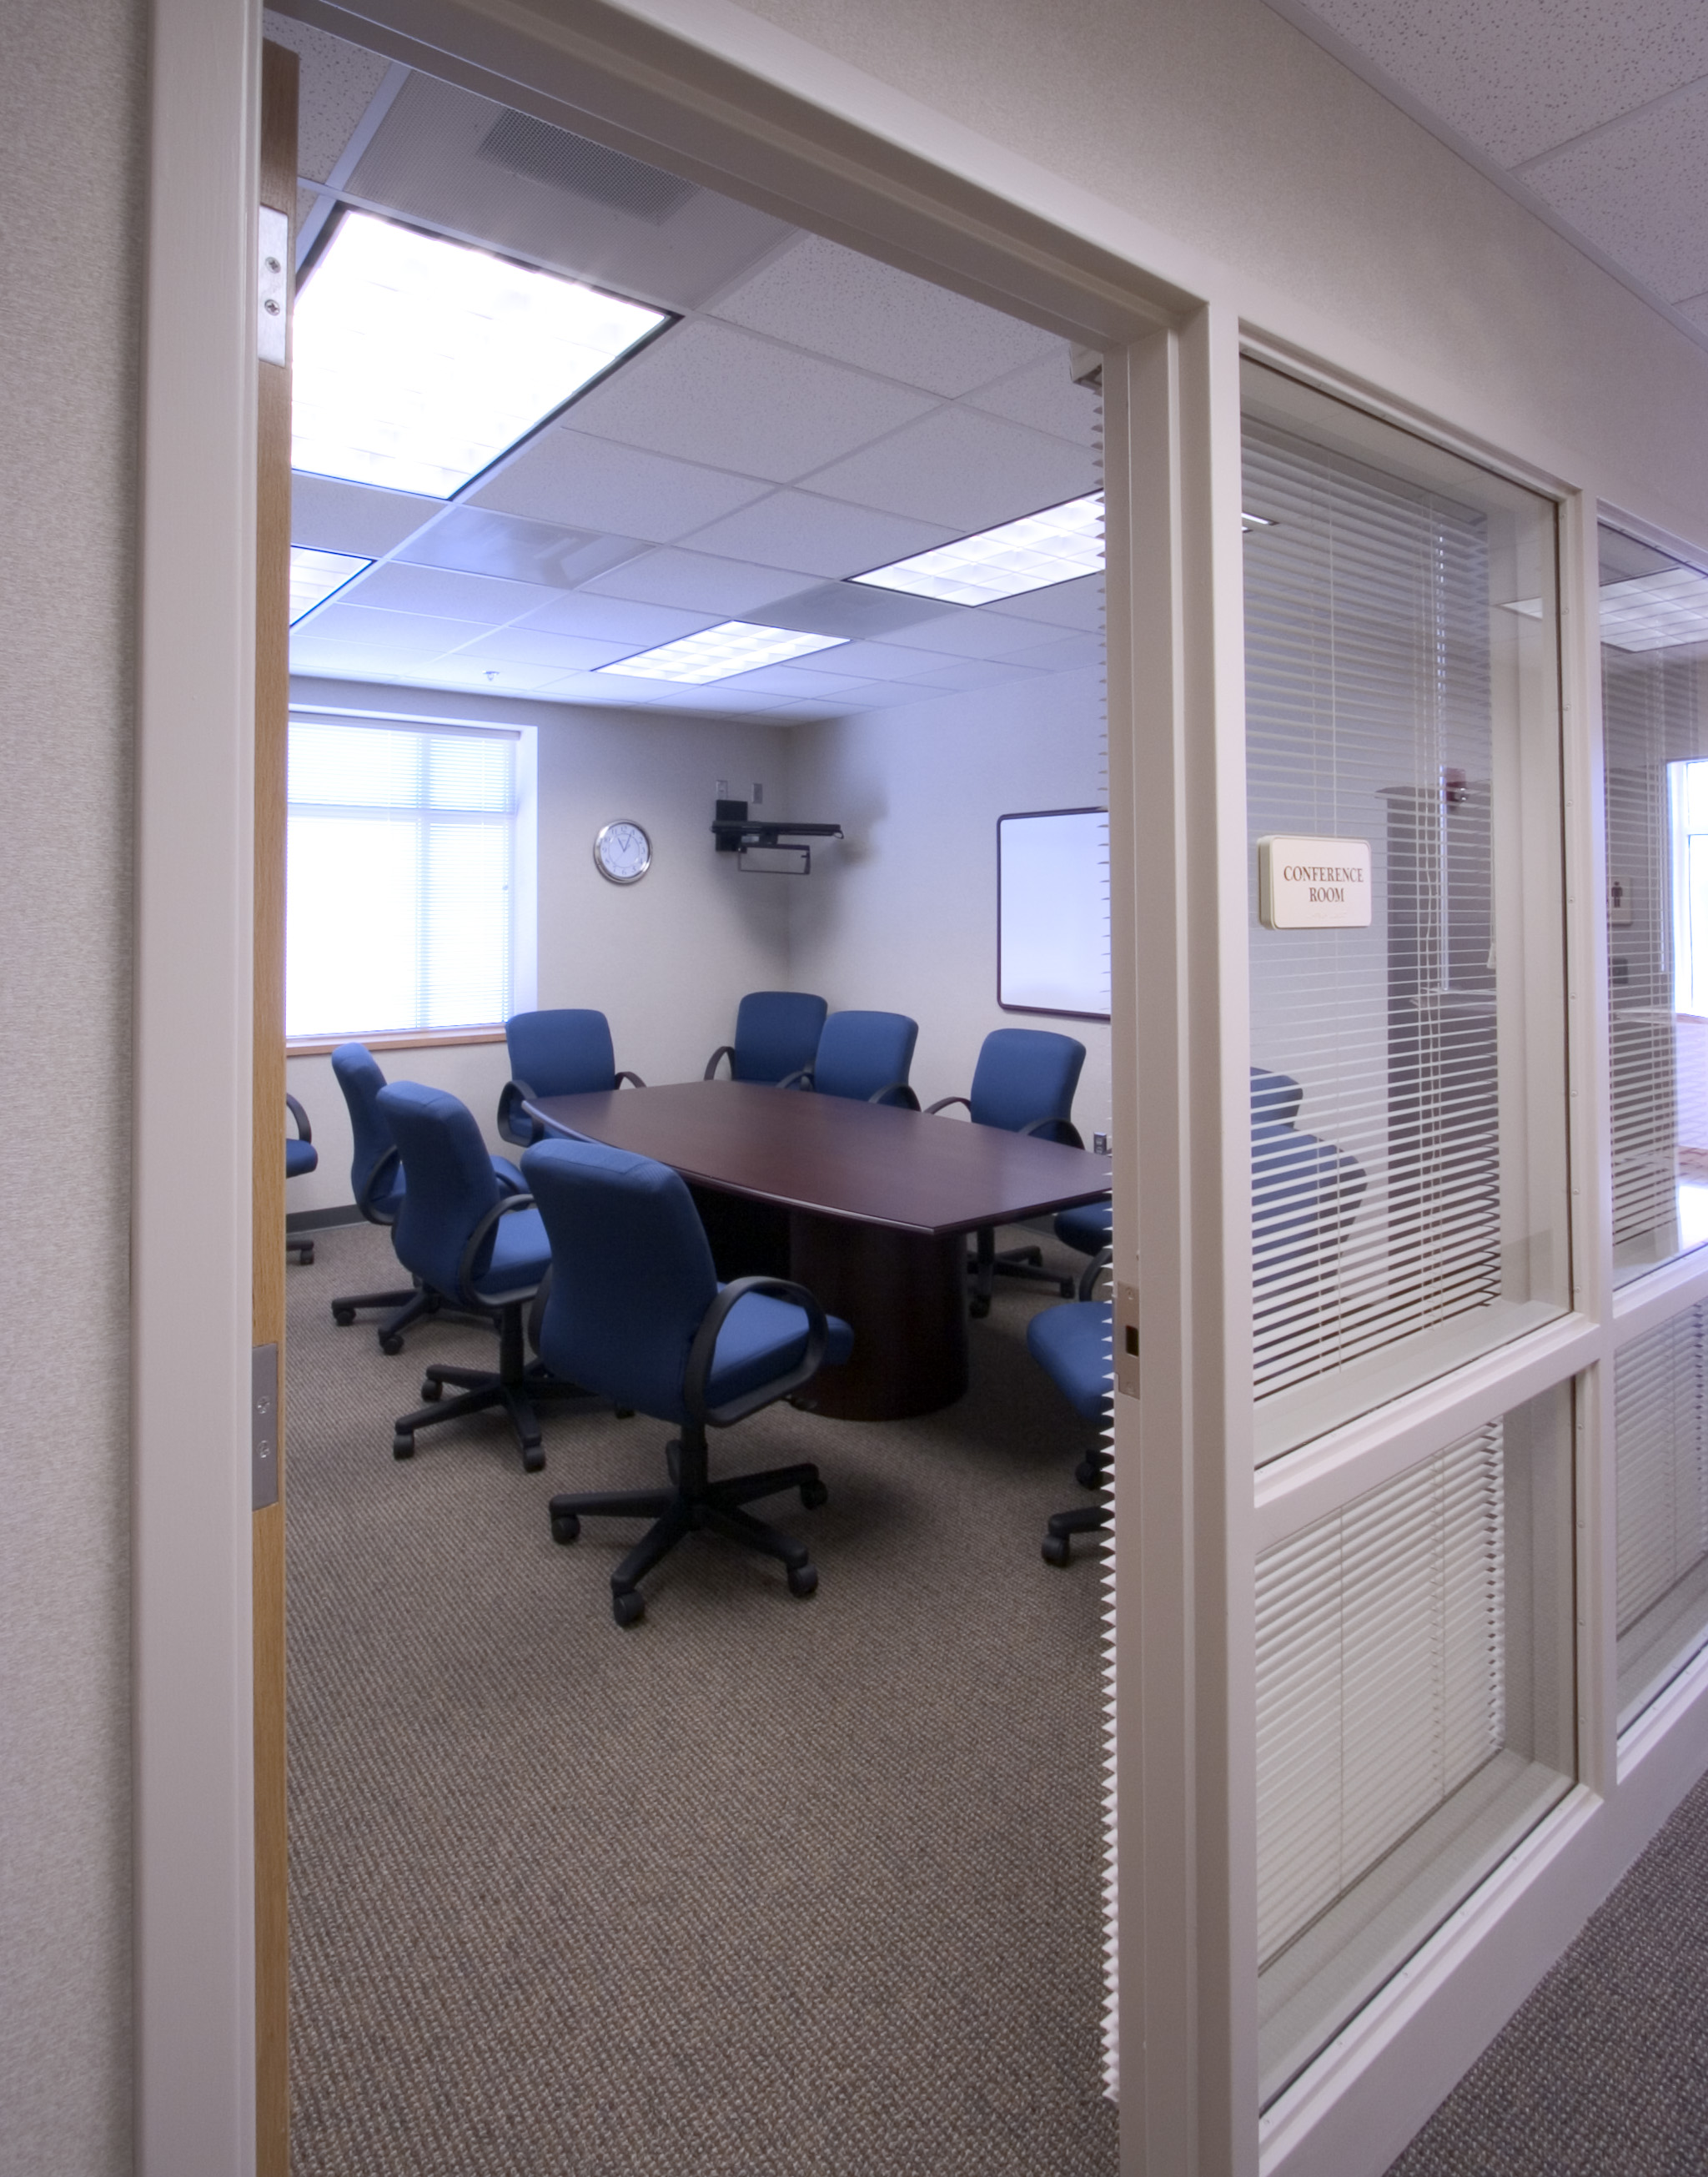 Inside of of office with conference table